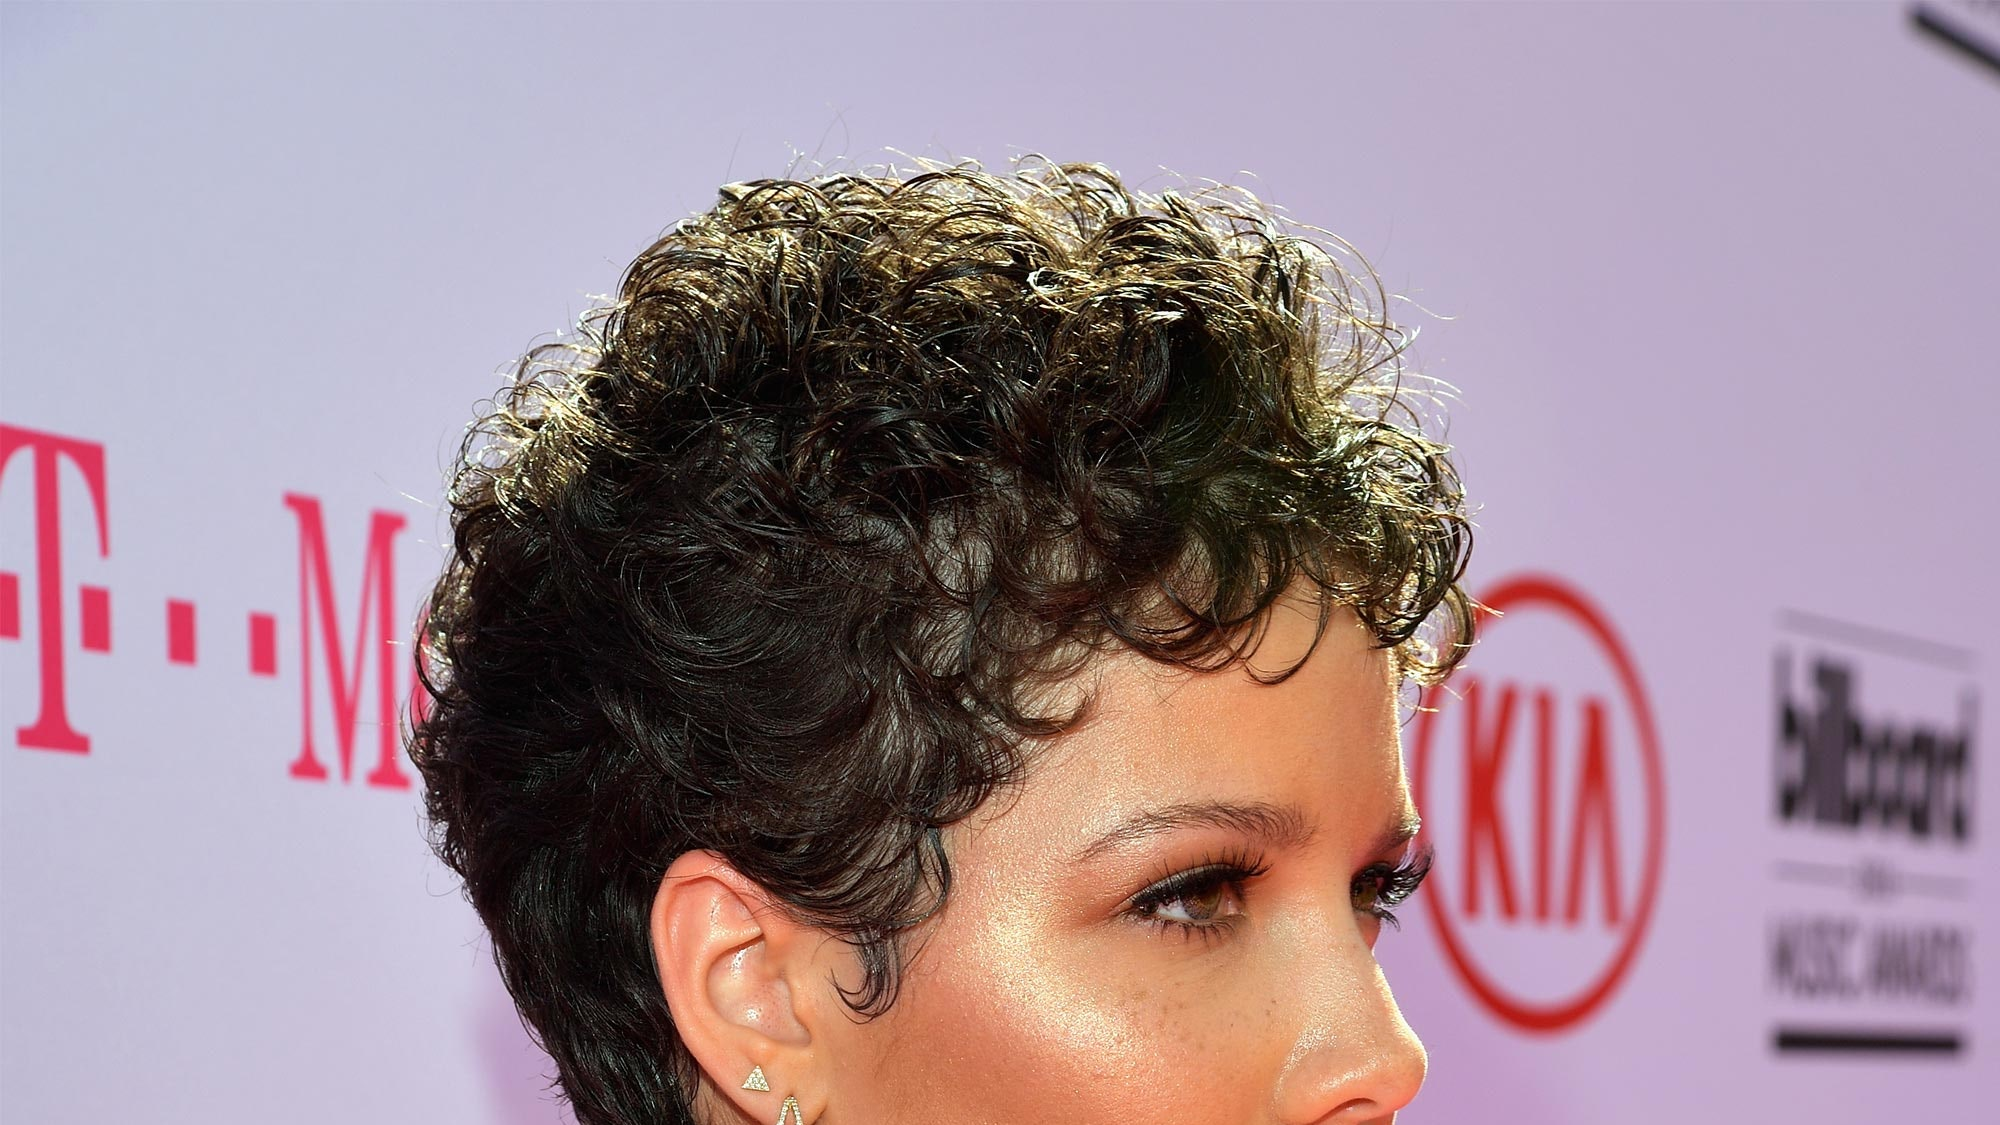 3 Modern Halsey Natural Hair Design Ideas That You Can Use When Changing That Look